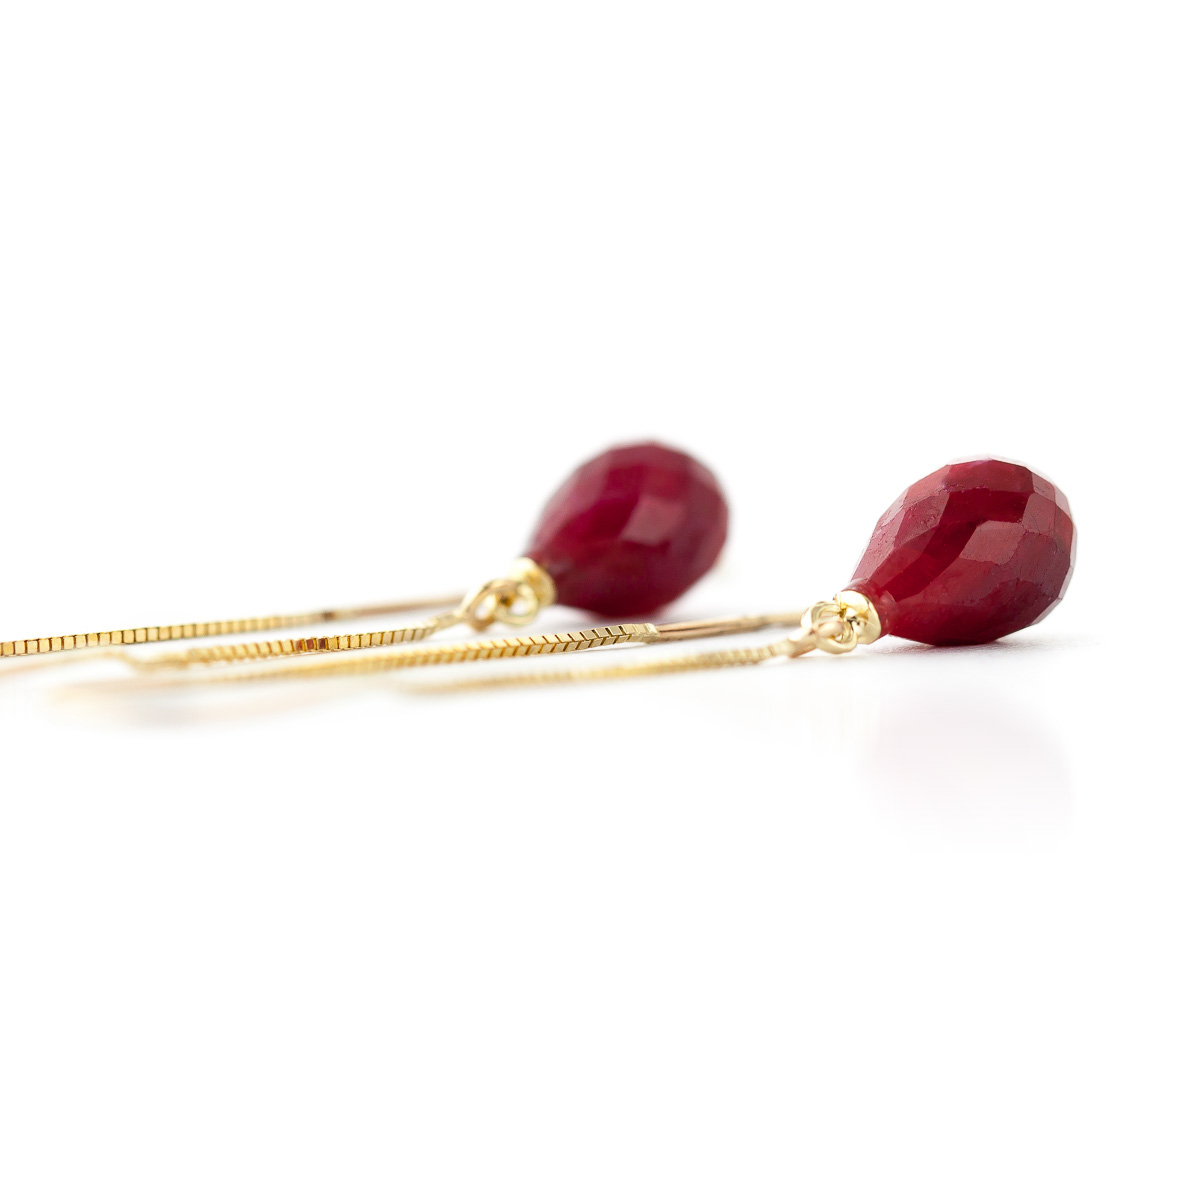 Ruby Scintilla Briolette Earrings 6.6ctw in 9ct Gold